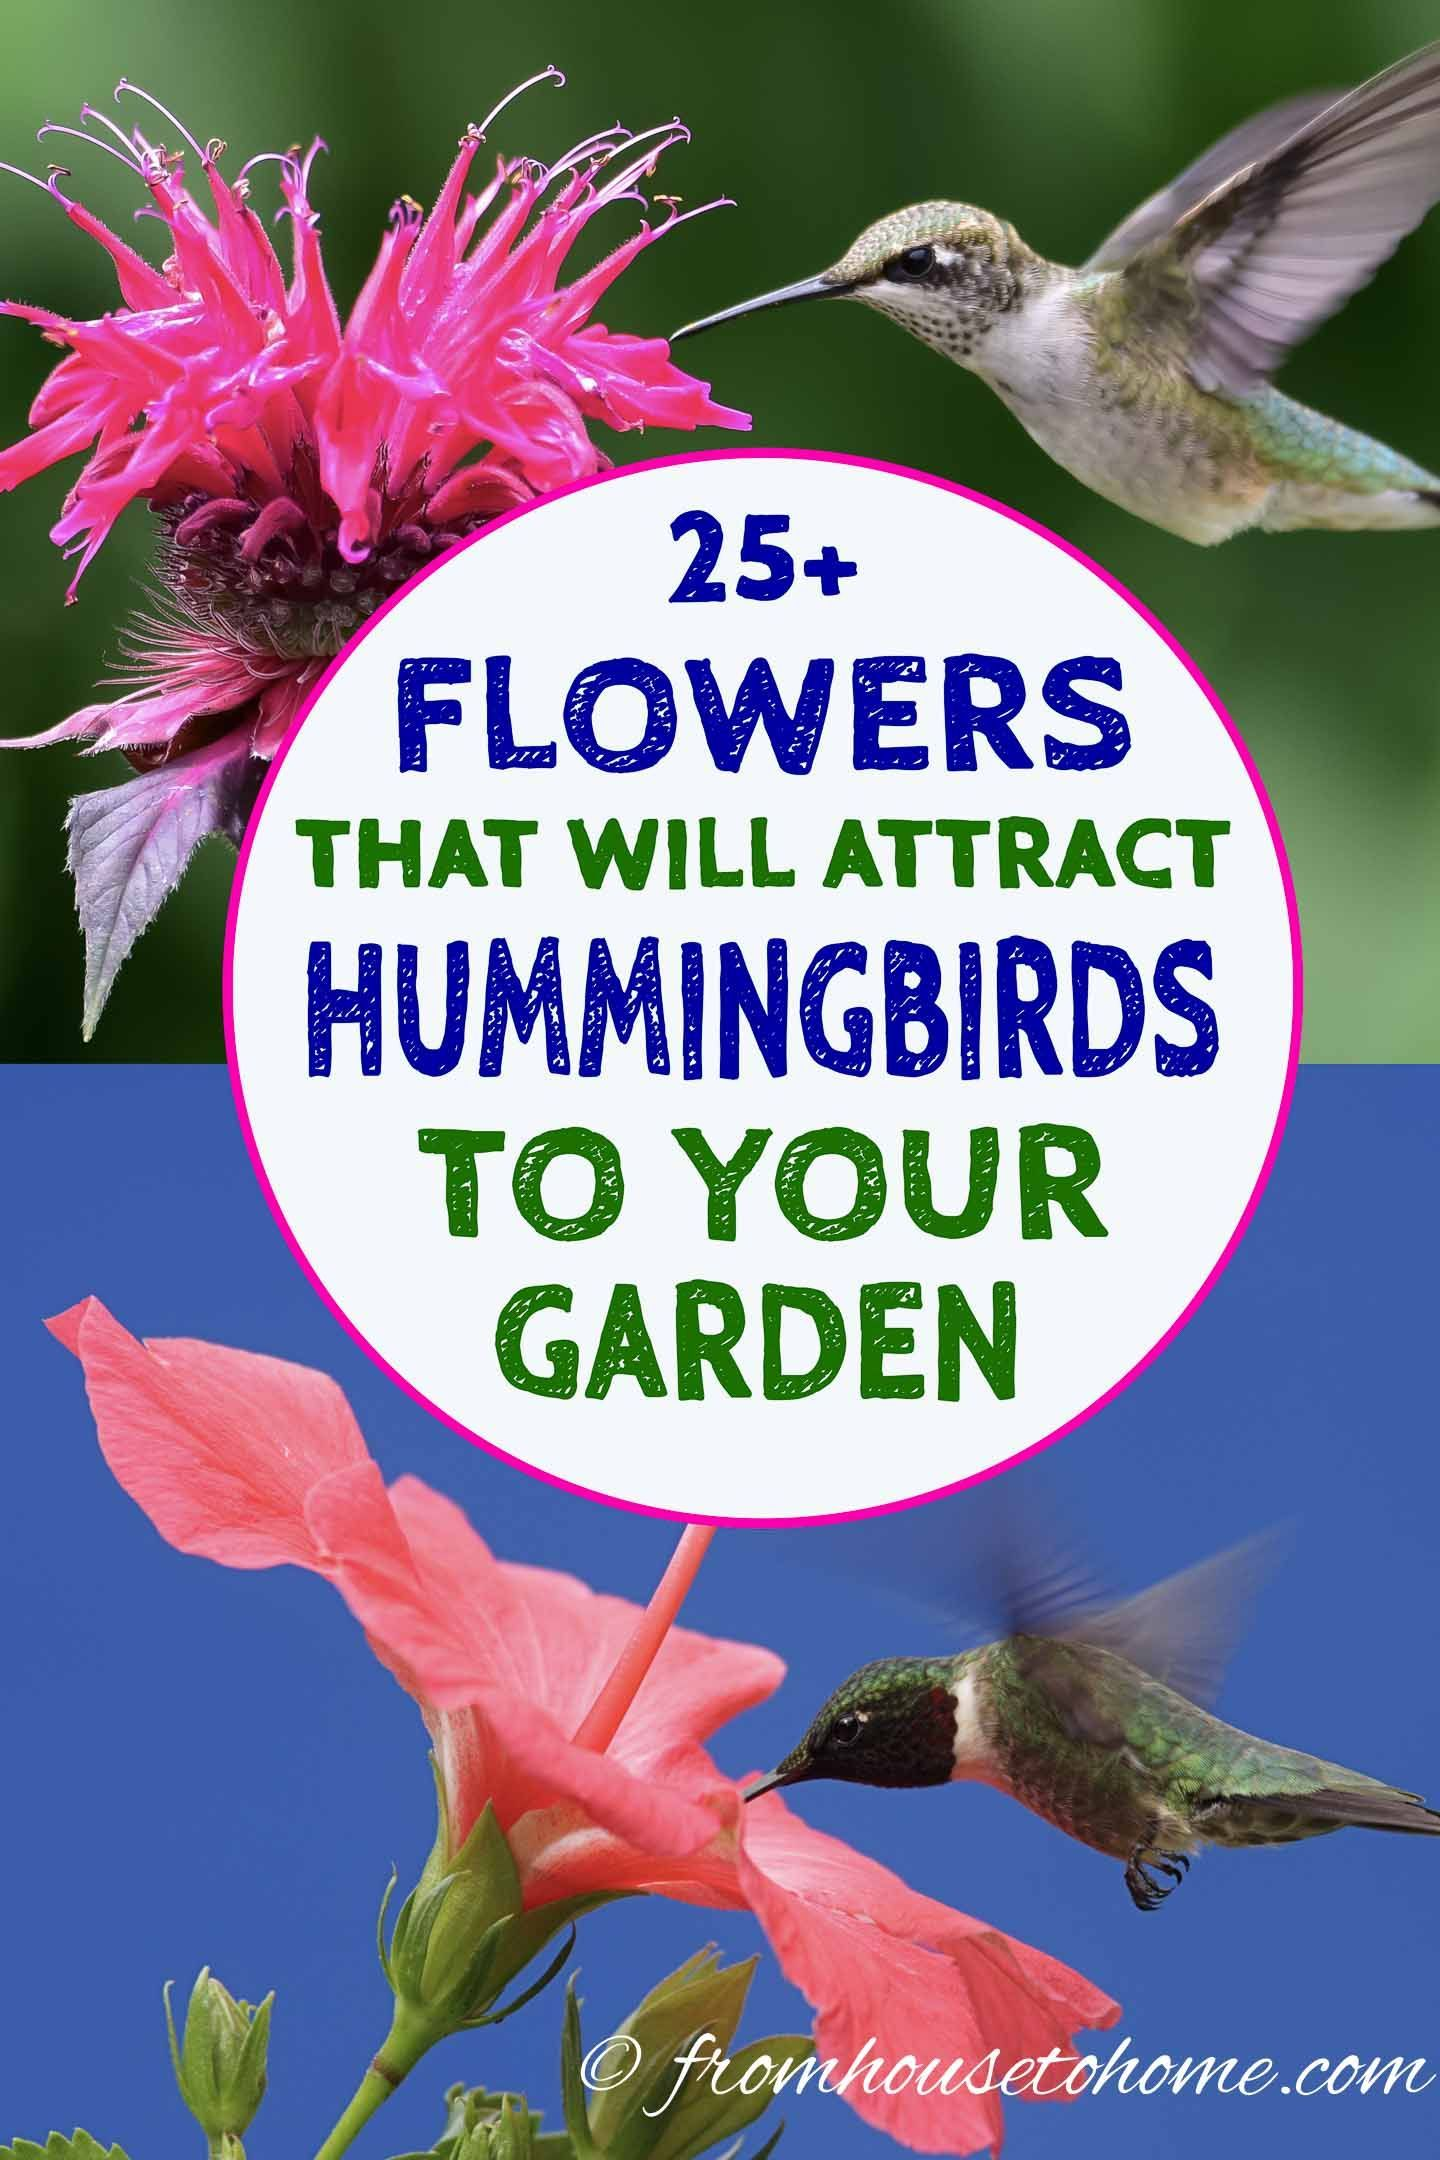 Hummingbird Plants 25 Of The Best Flowers That Attract Hummingbirds Gardening From House To Home Flowers That Attract Hummingbirds Hummingbird Plants How To Attract Hummingbirds